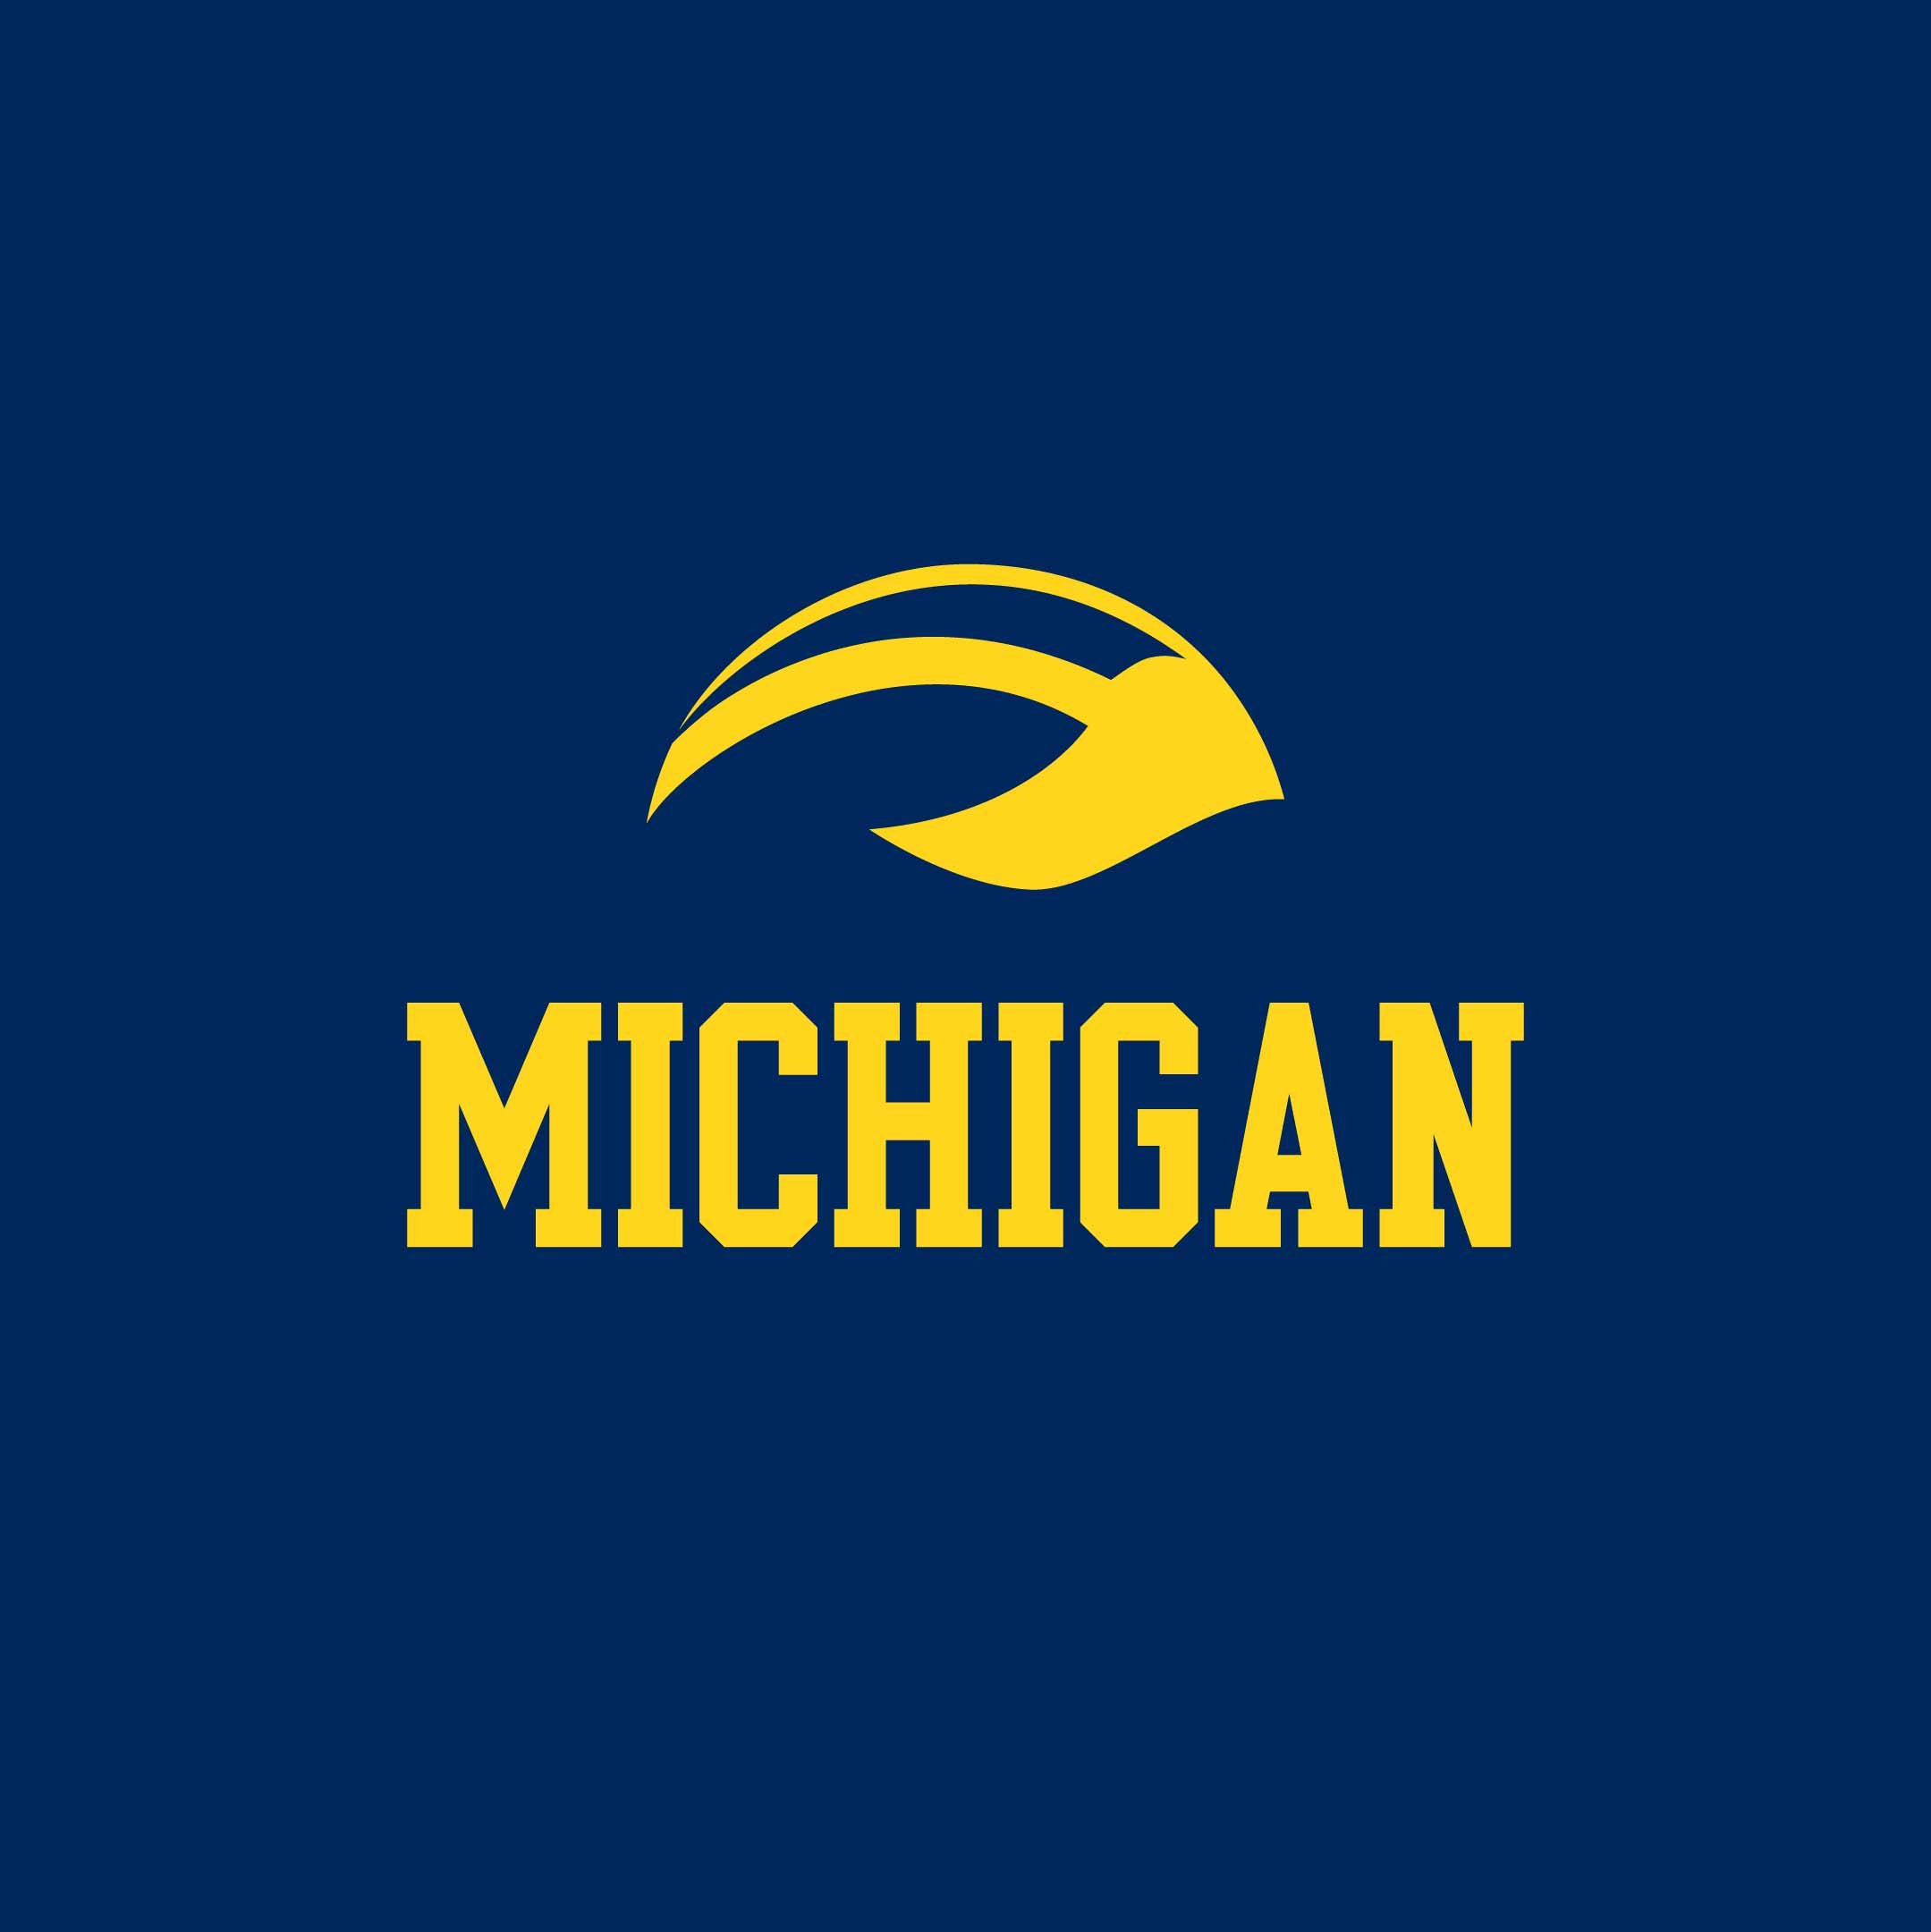 michigan wolverines logo wallpaper   wwwhigh definition wallpapercom 2159x2160